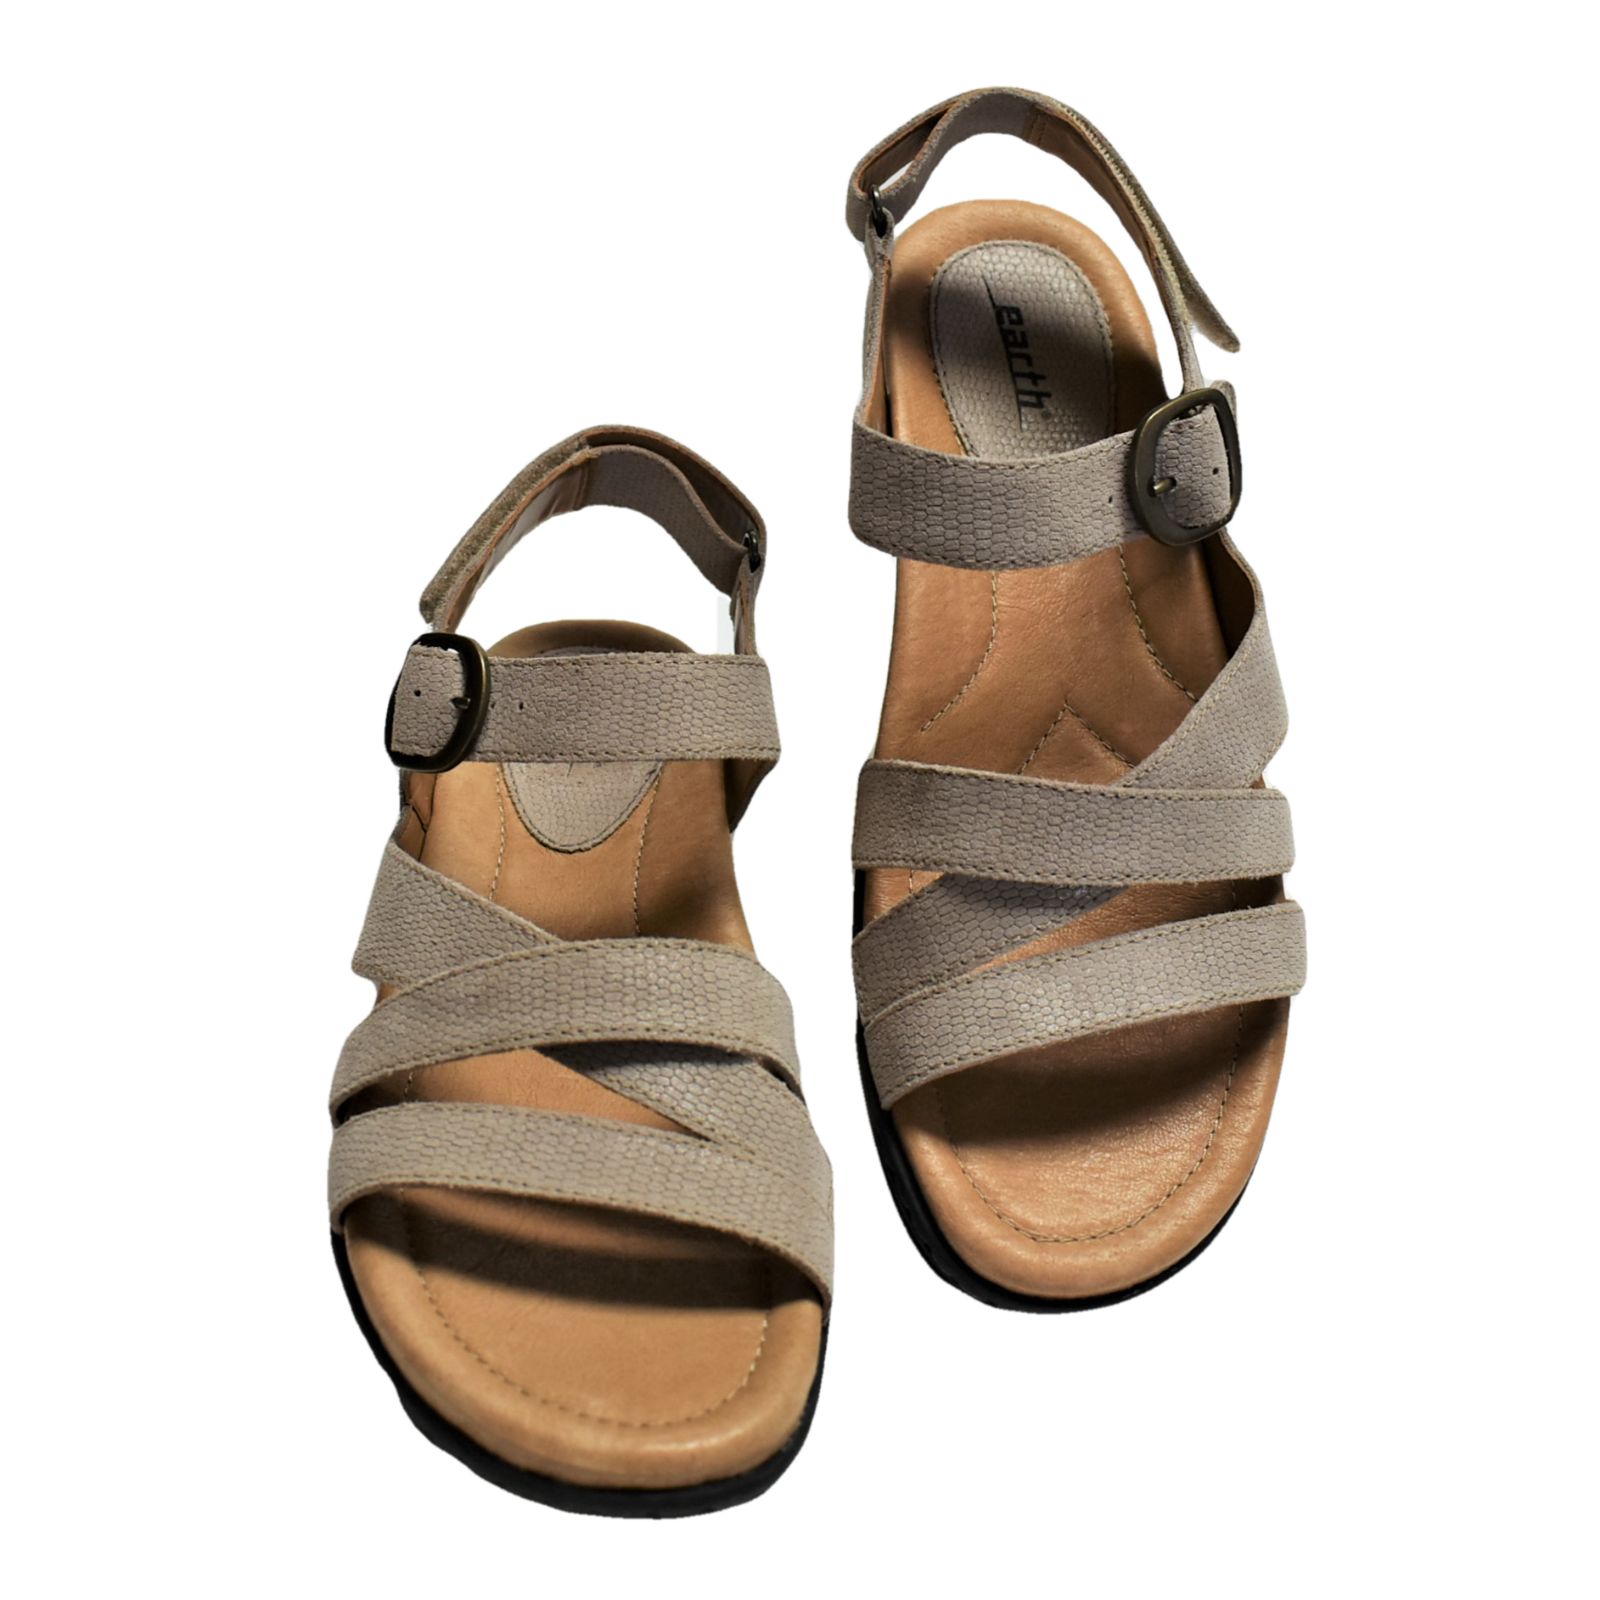 Cuir Sandales M 42 10 Femmes Aster Earth Bride Taupe Plat